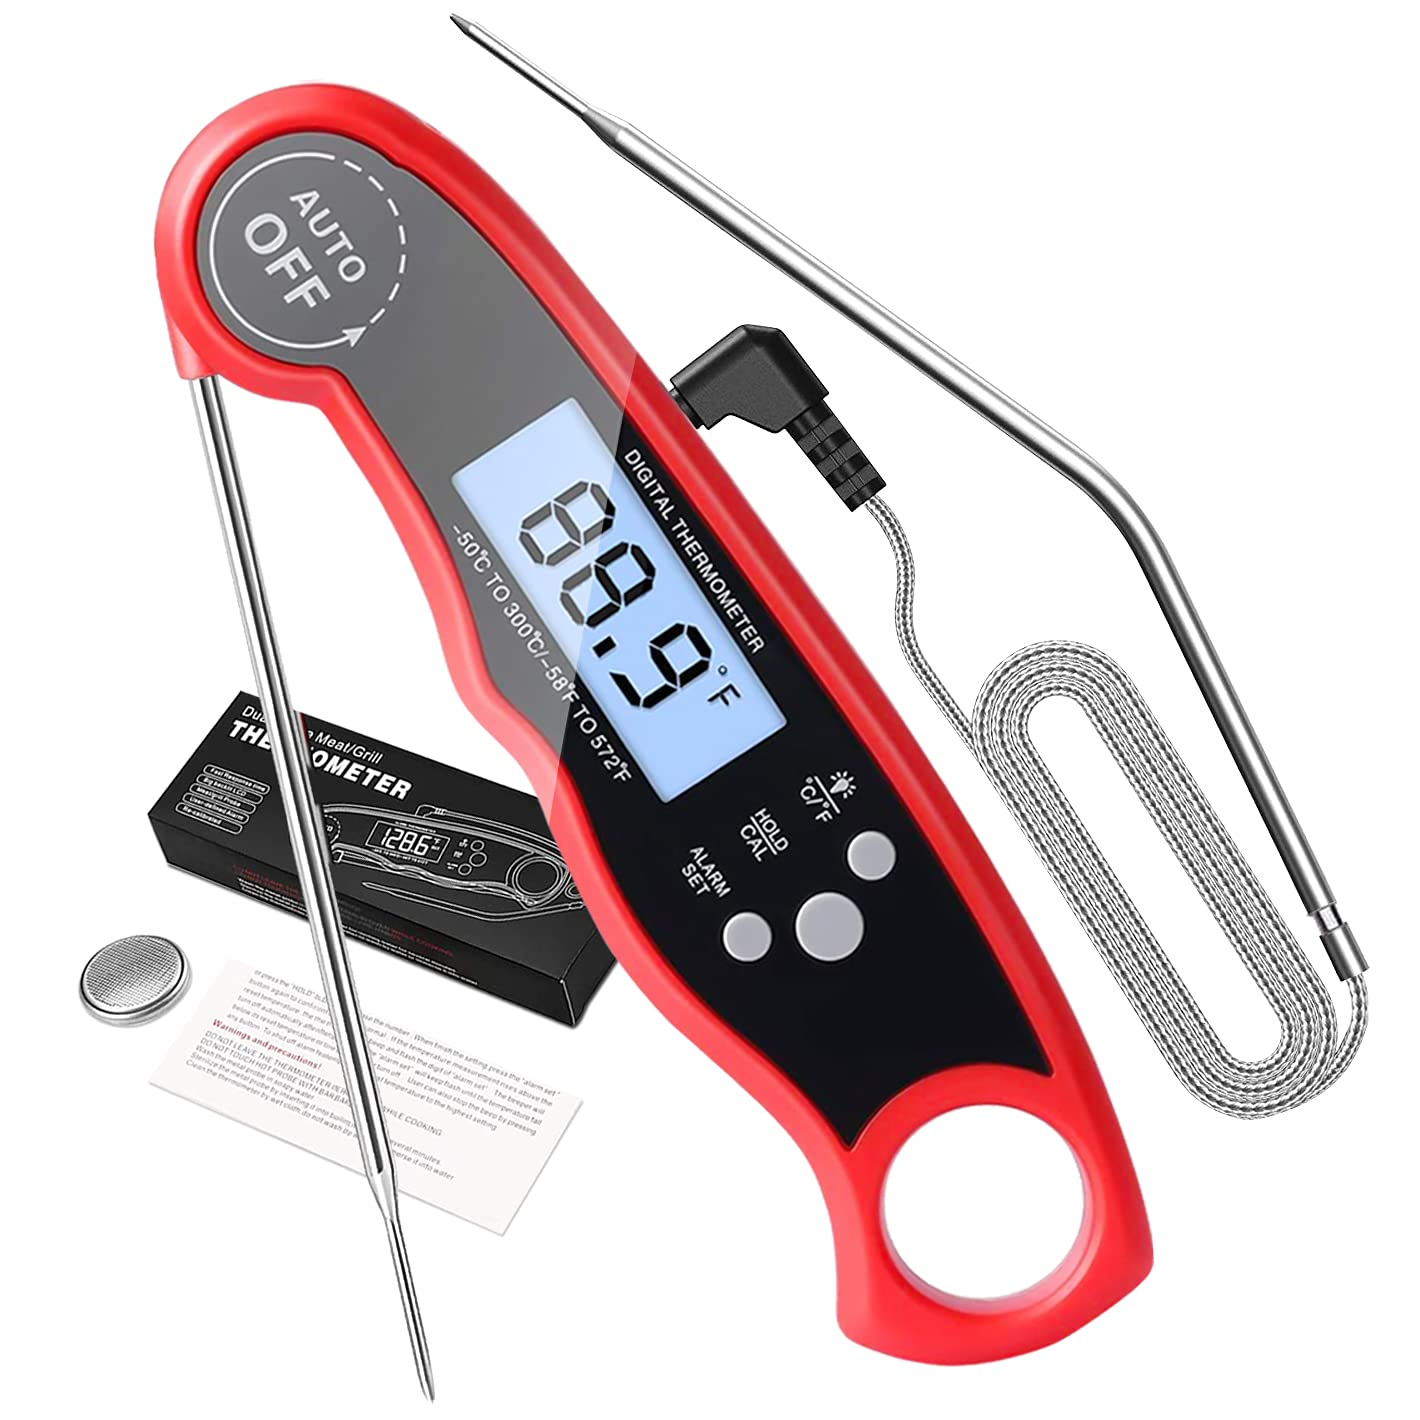 Meat Thermometer,Digital Dual Probe Meat Thermometers for Cooking,2 in 1 Instant Read Food Thermometer with Alarm Function and Backlight for Kitchen Grilling Baking Frying Smoker (Red)